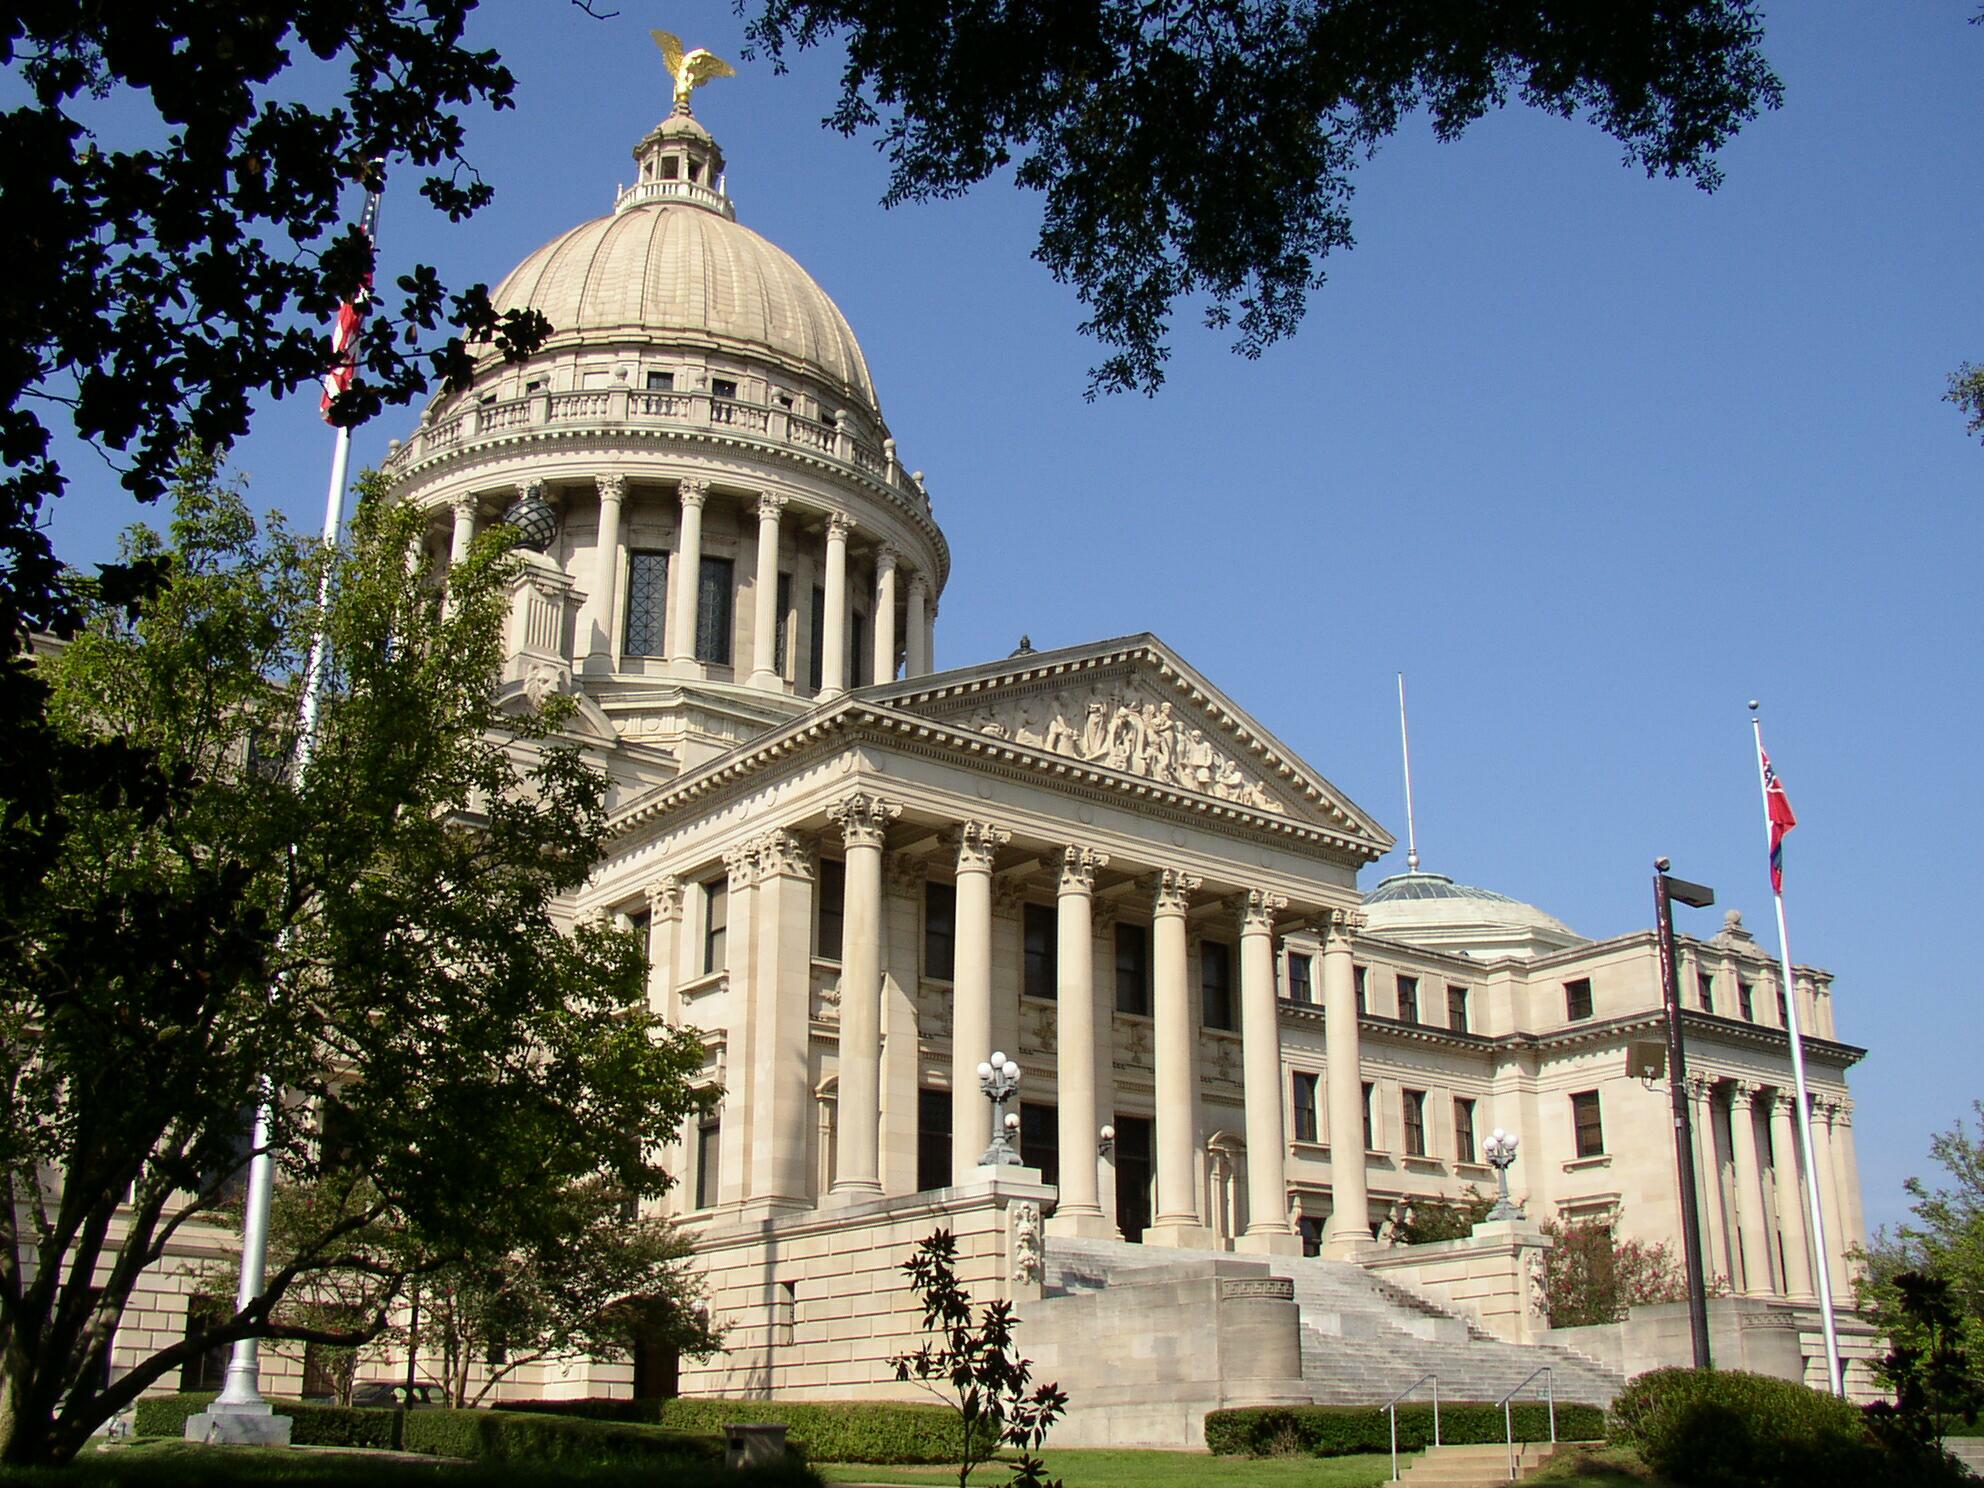 Mississippi State Capital